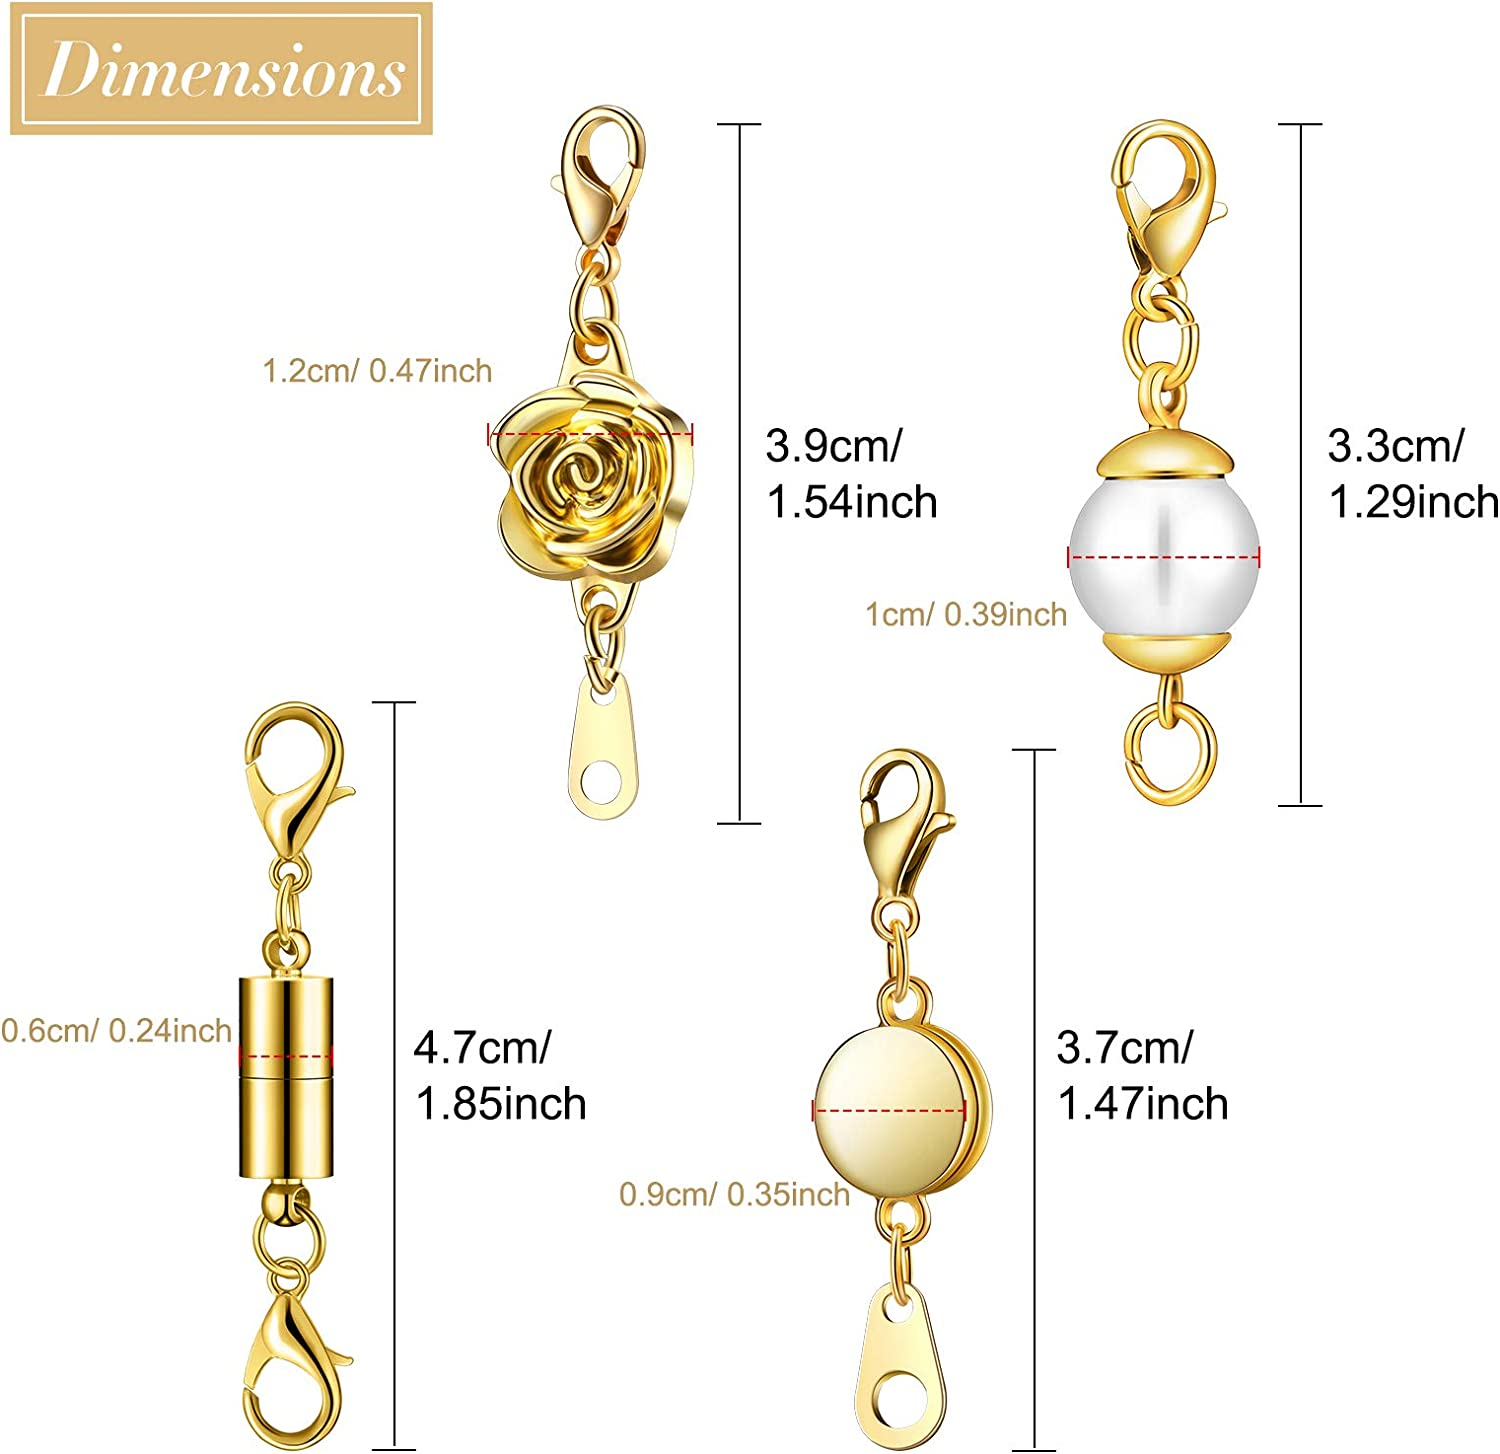 Silver and Gold 16 Pieces Magnetic Jewelry Clasps Magnetic Lobster Clasp Necklace Clasp Closures Bracelet Extender Round Artificial Pearl Locking Clasp Rose Screw-in System Lobster Clasp for Jewelry